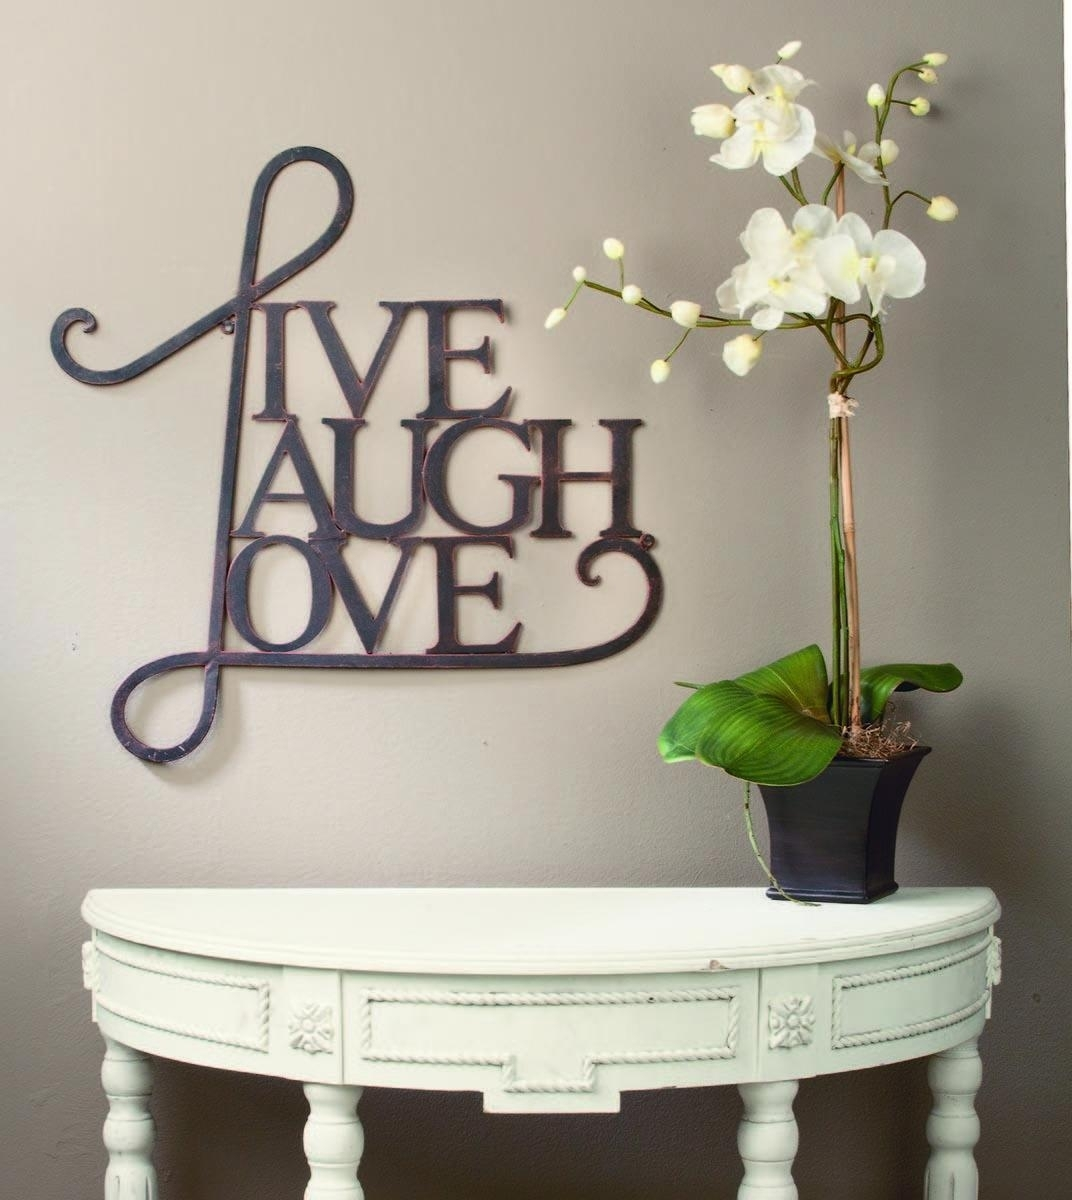 Live Laugh Love Wall Art – Tripar International, Inc. Regarding Most Up To Date Live Laugh Love Wall Art (Gallery 16 of 20)